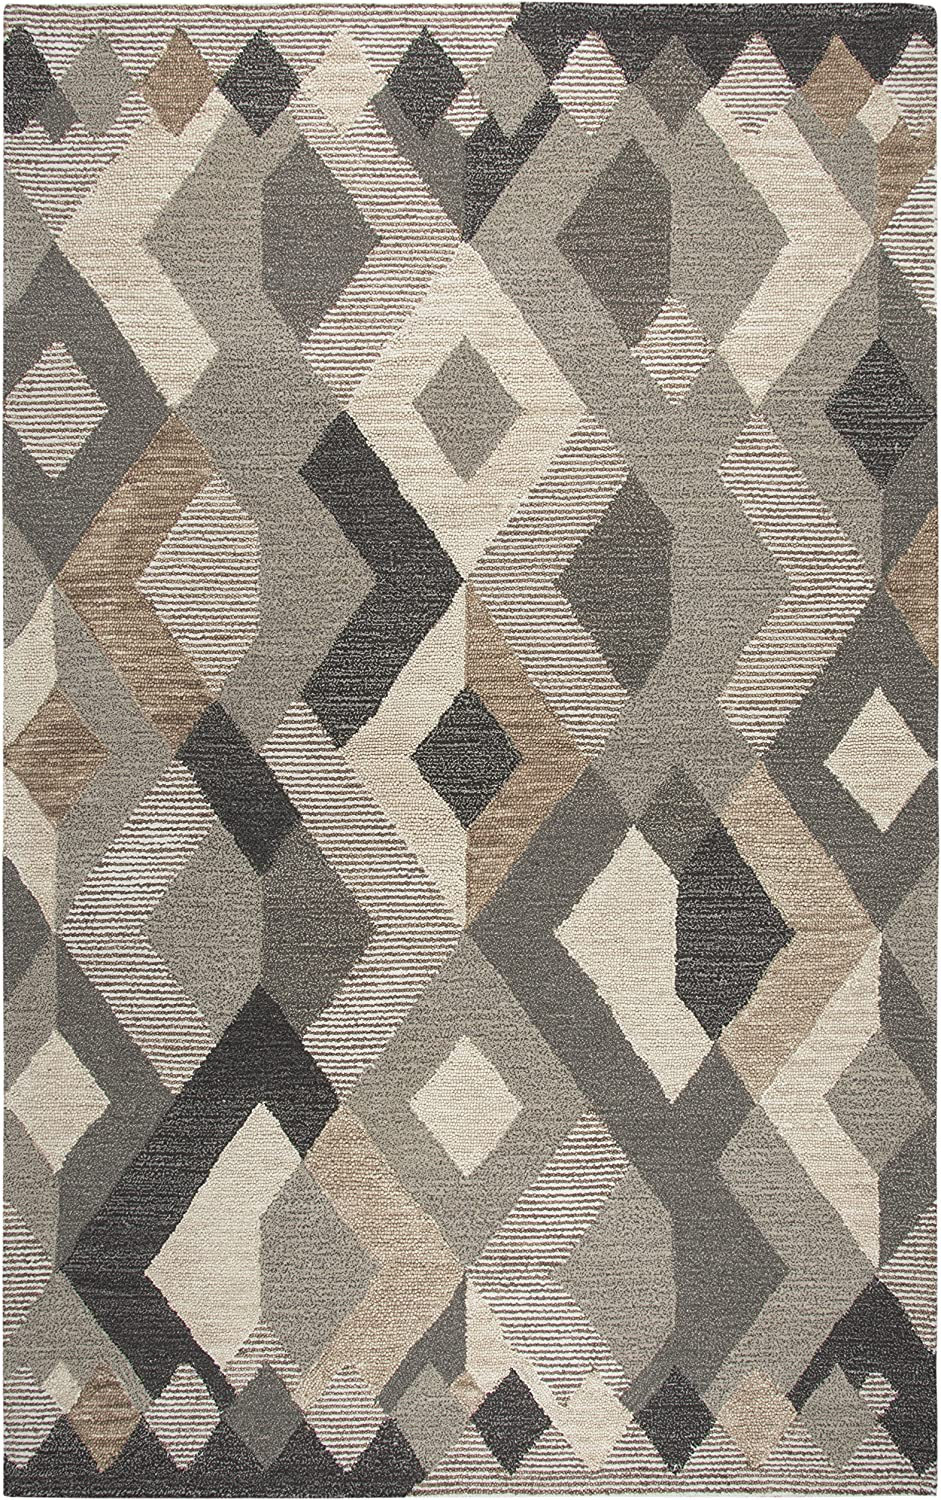 Rizzy Home Idyllic Collection Wool Area Rug, 9' x 12', Natural/Gray/Rust/Blue Geometric